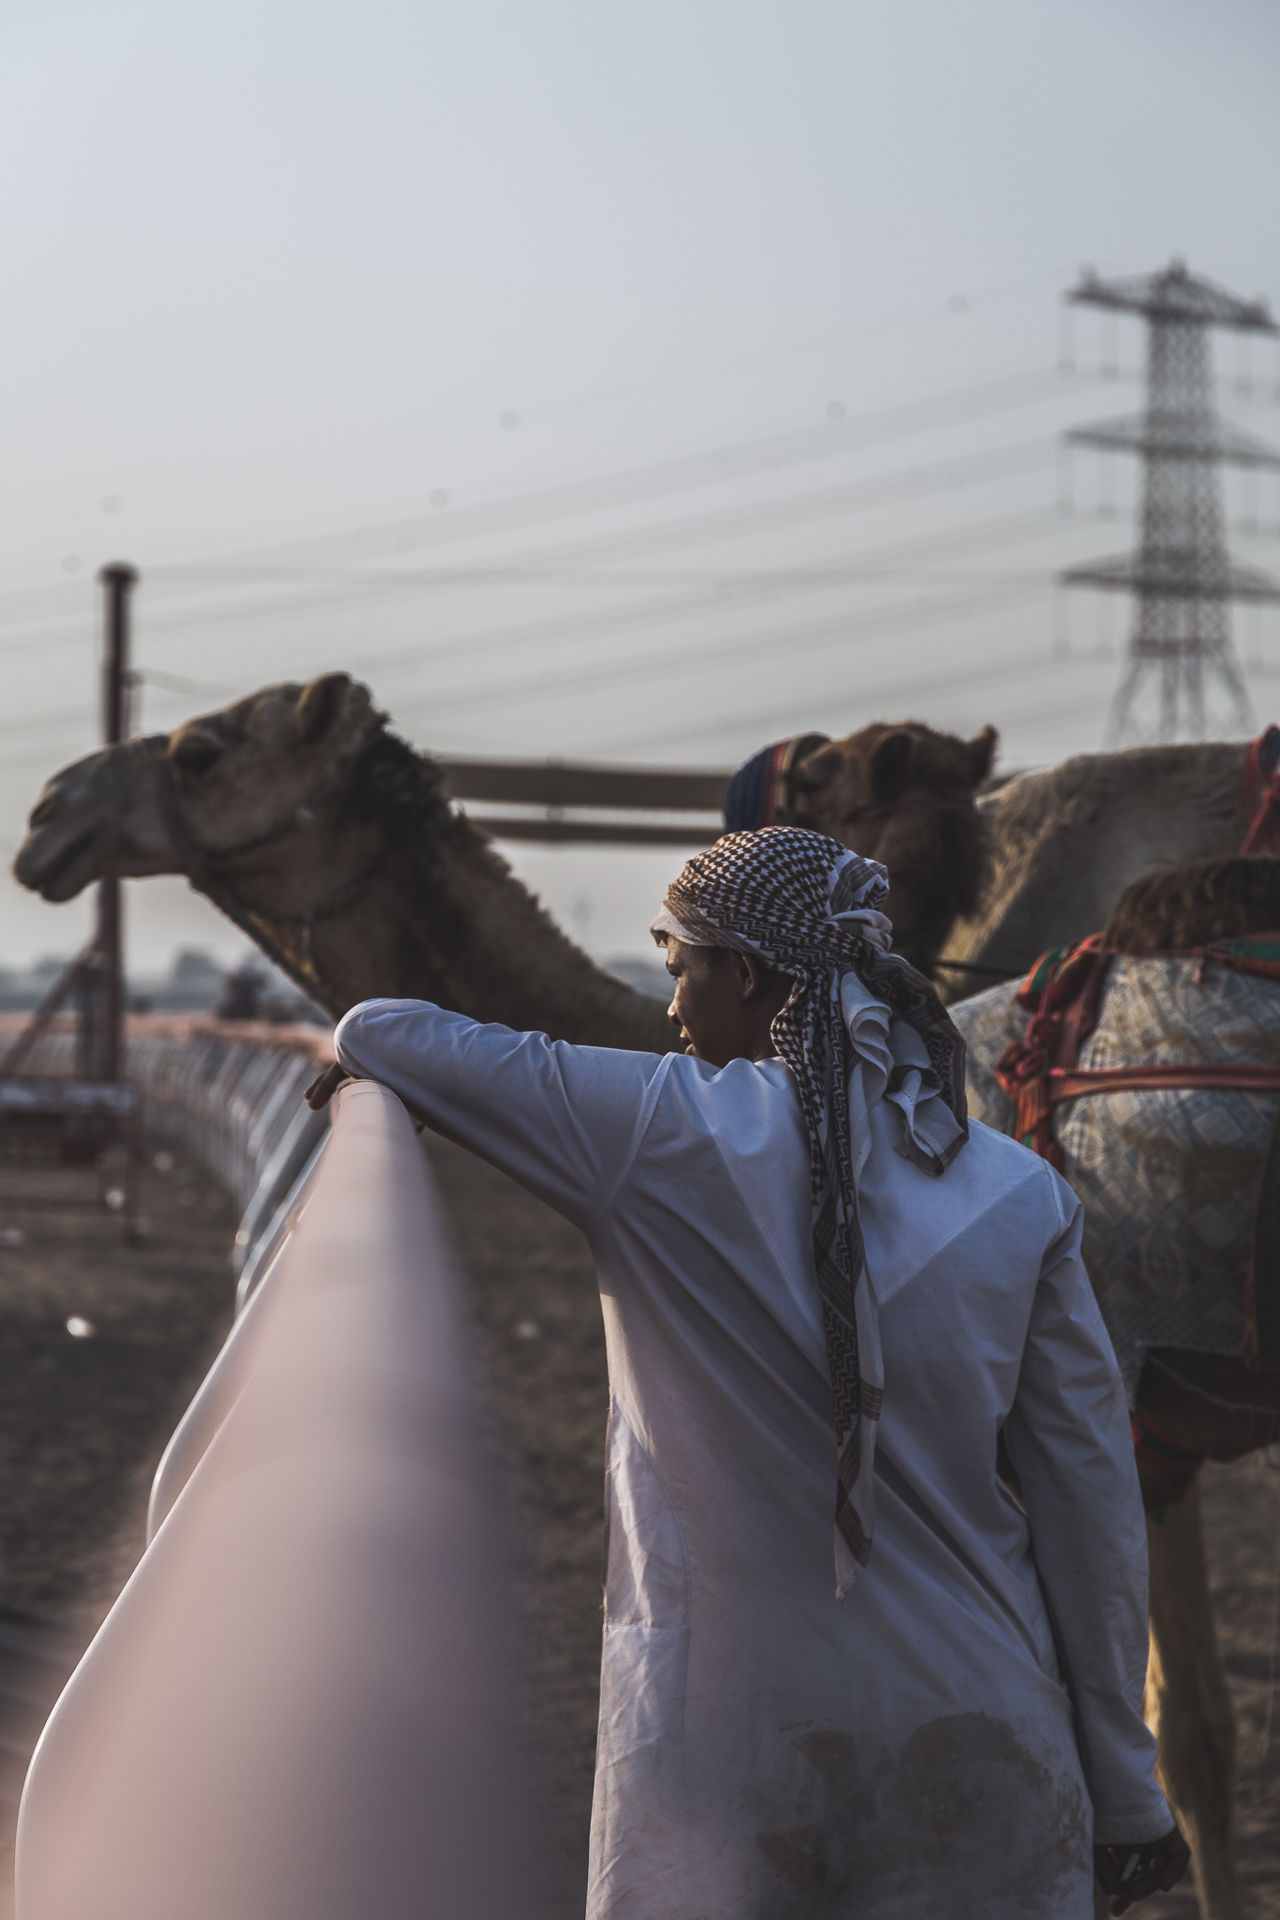 Camel Domestic Animals Eye4photography  EyeEm Best Shots EyeEm Gallery EyeEm Nature Lover Leisure Activity Mammal Men Nature One Animal One Person Outdoors People Real People Standing Weekend The Street Photographer The Street Photographer - 2017 EyeEm Awards The Photojournalist - 2017 EyeEm Awards